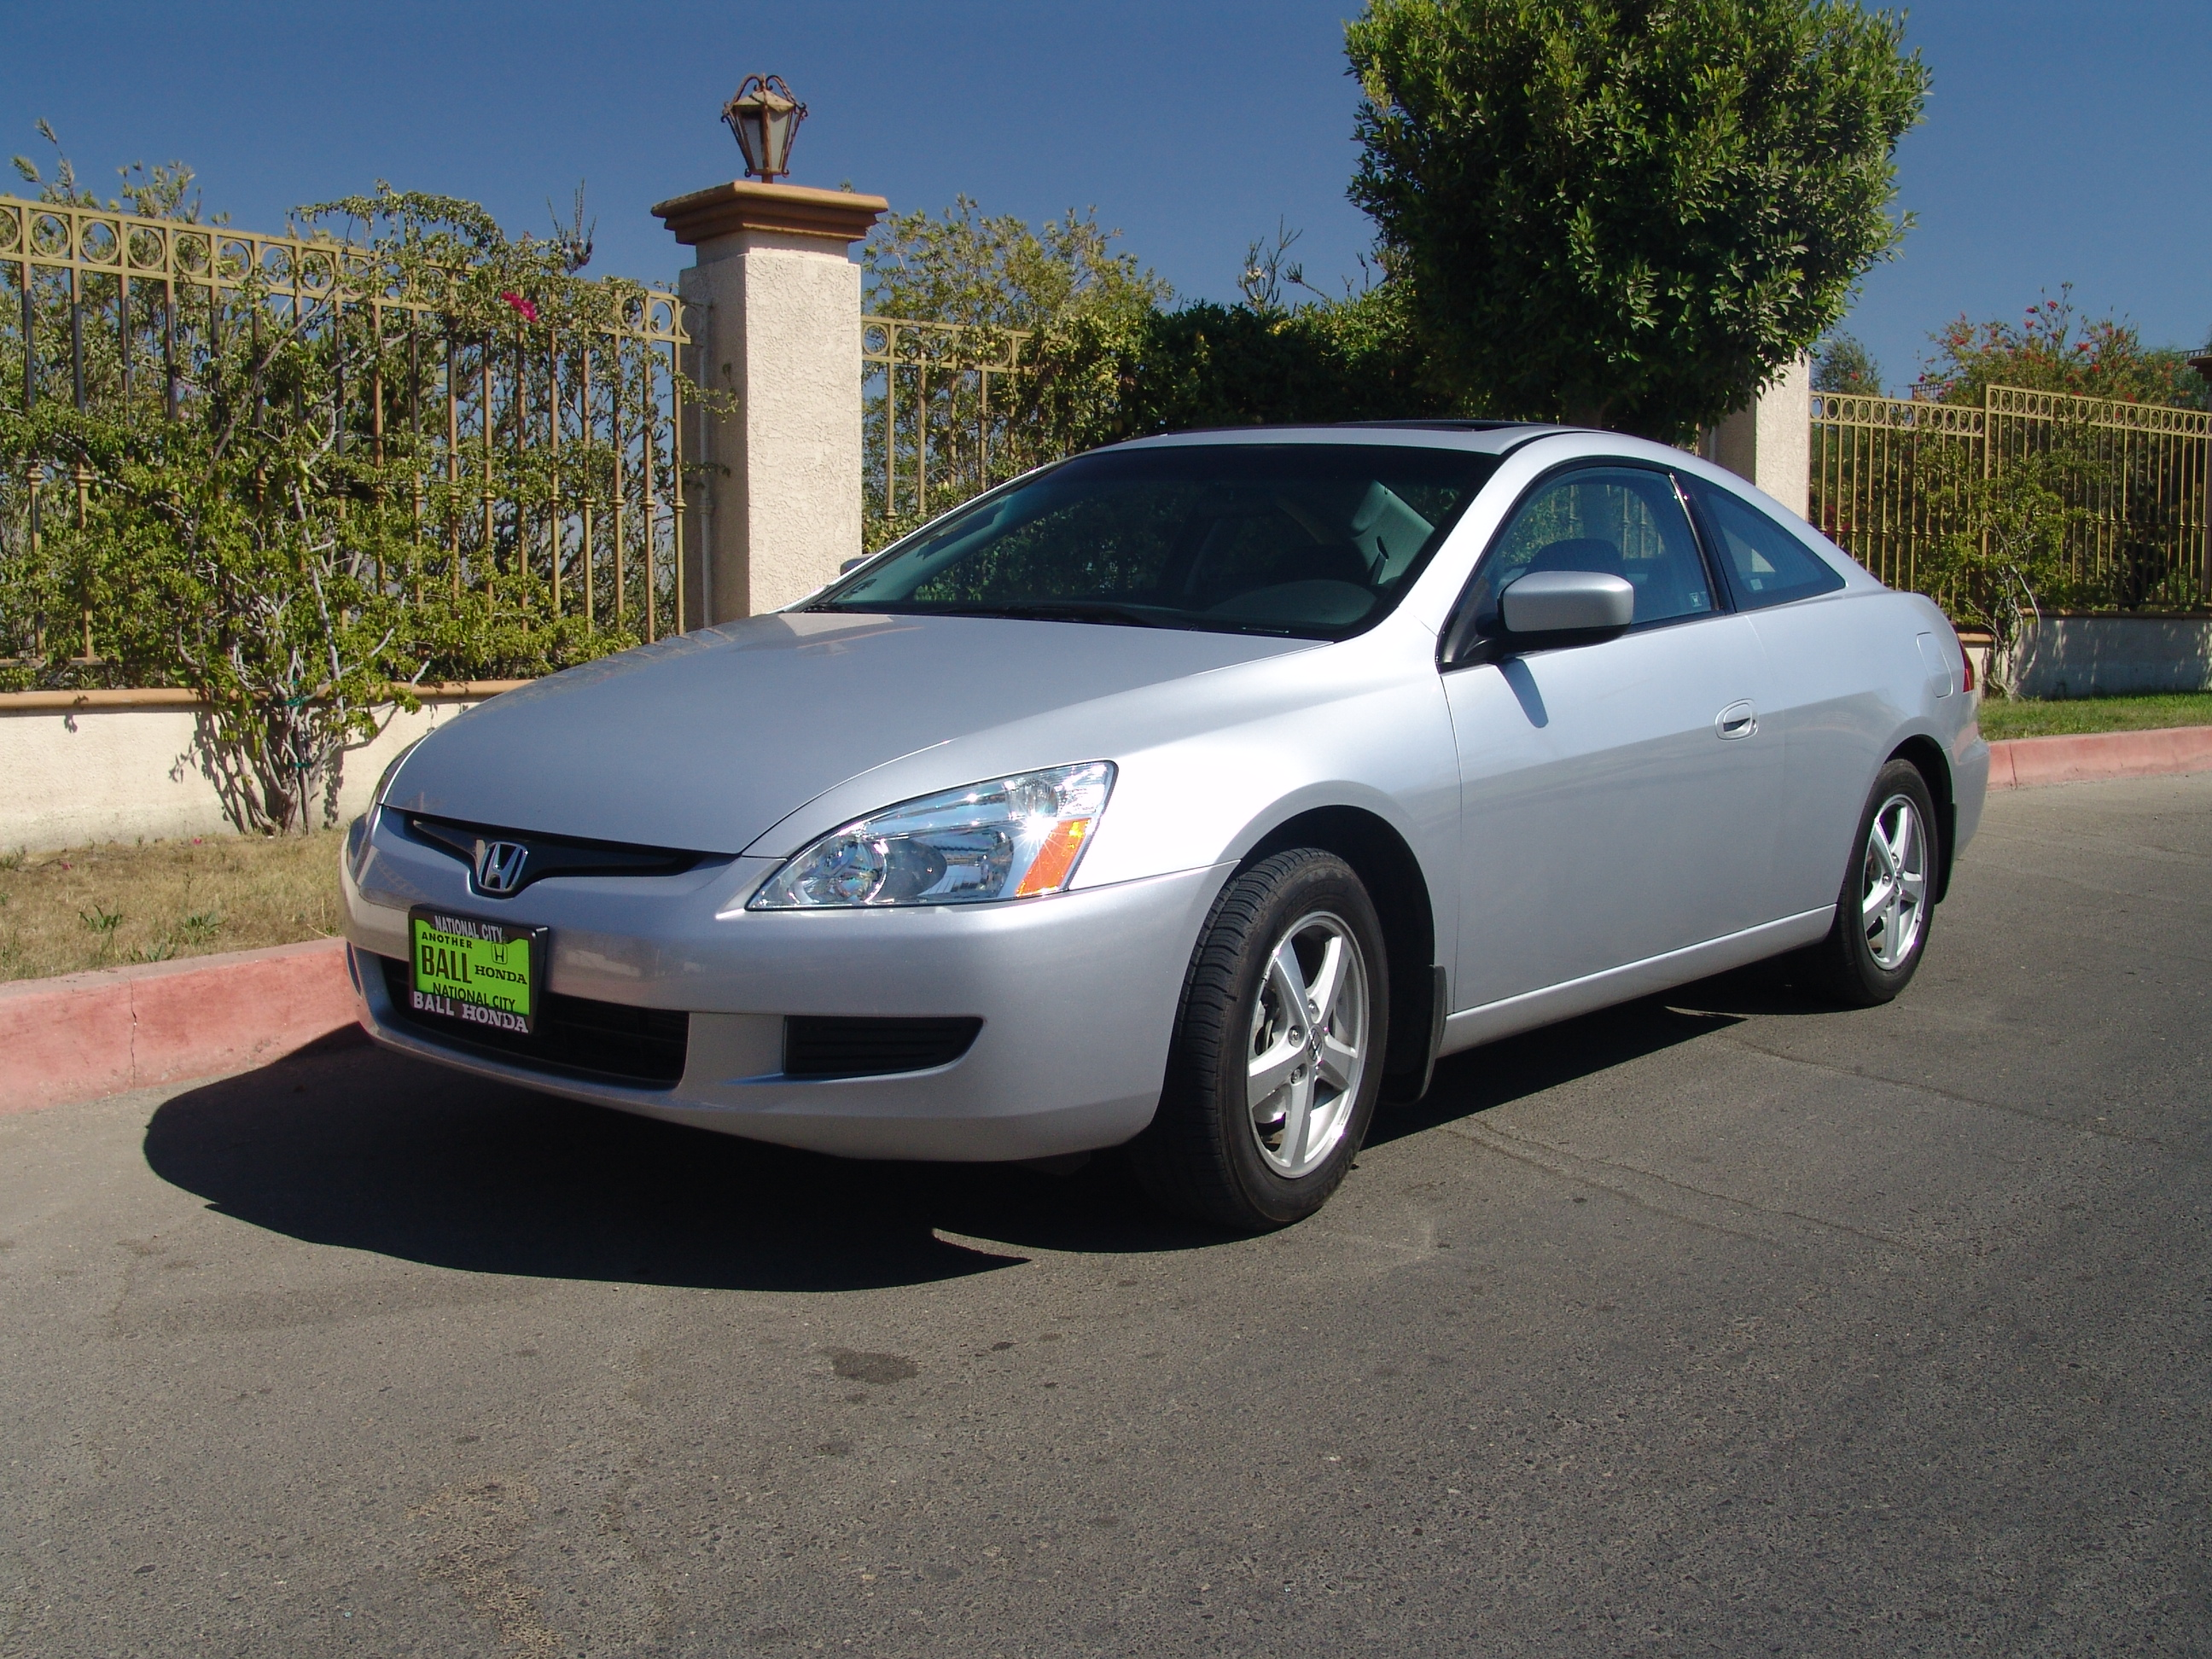 File:2004 Accord Coupe